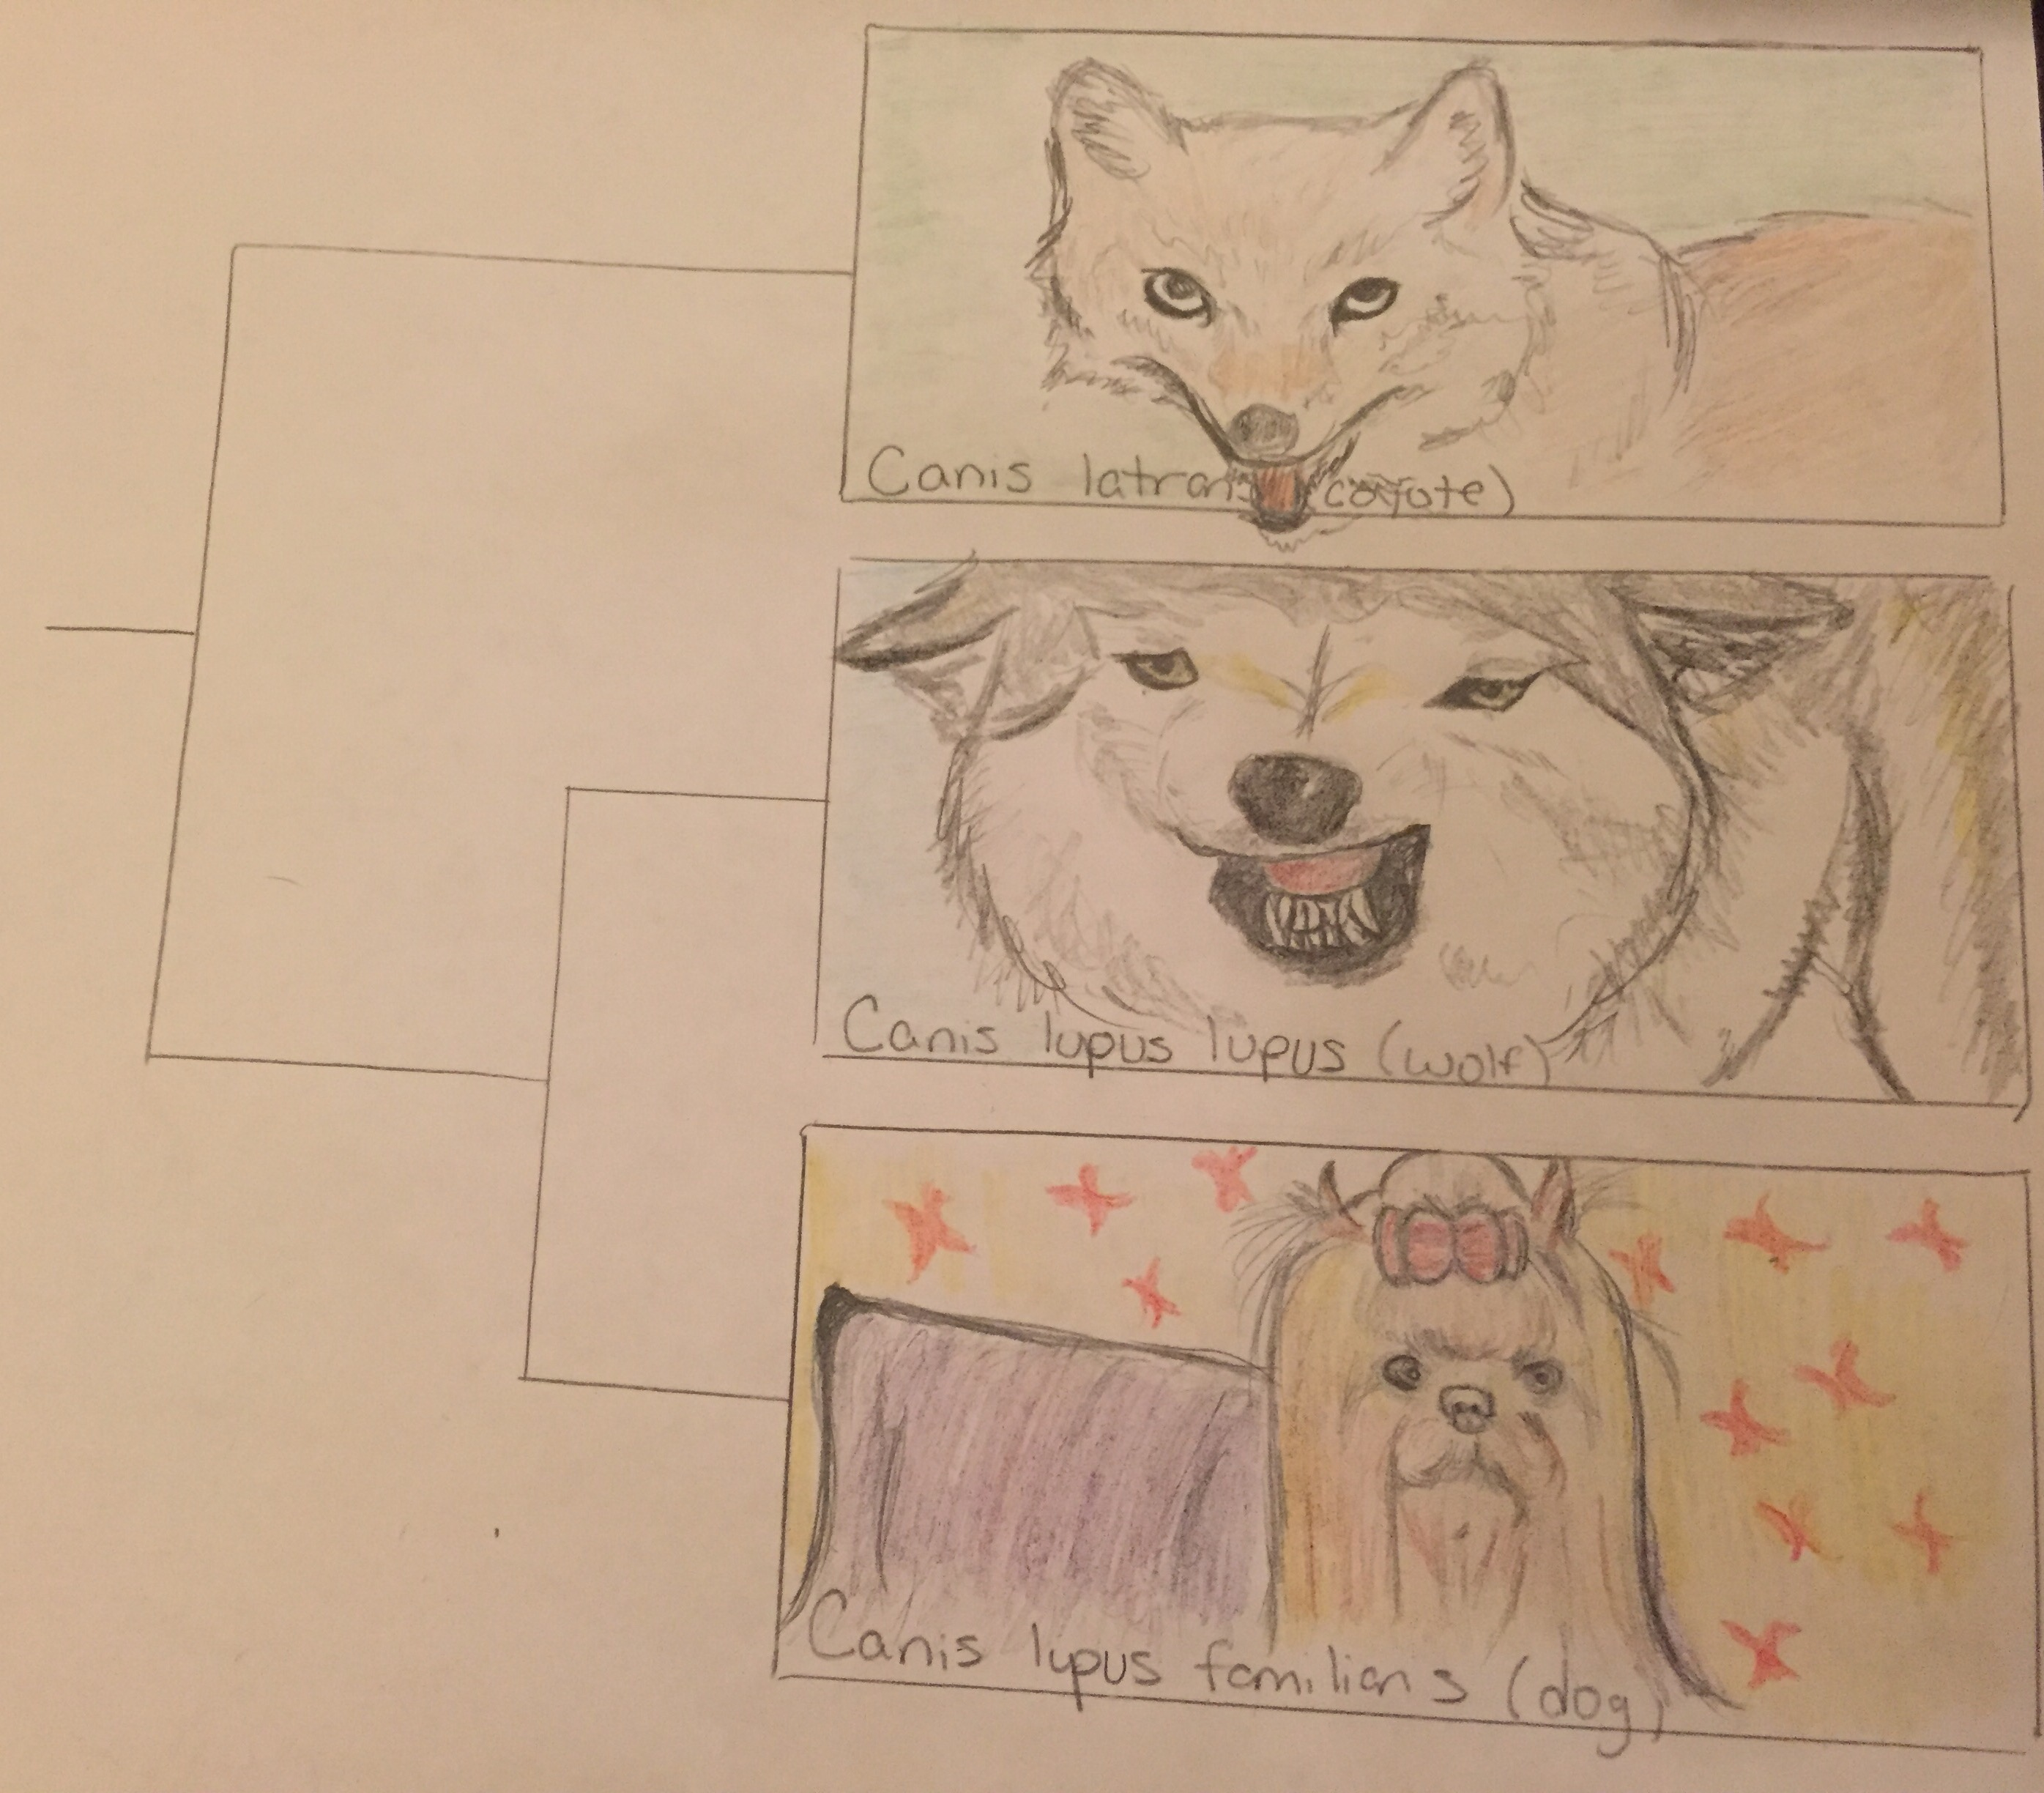 This is a graphic representation of the phylogenetic tree showing relatedness between dogs and wolves as it compares to outgroup (less related) species which branches off to form new species earlier on in history. The images show structural similarity and differences between the three species as well.